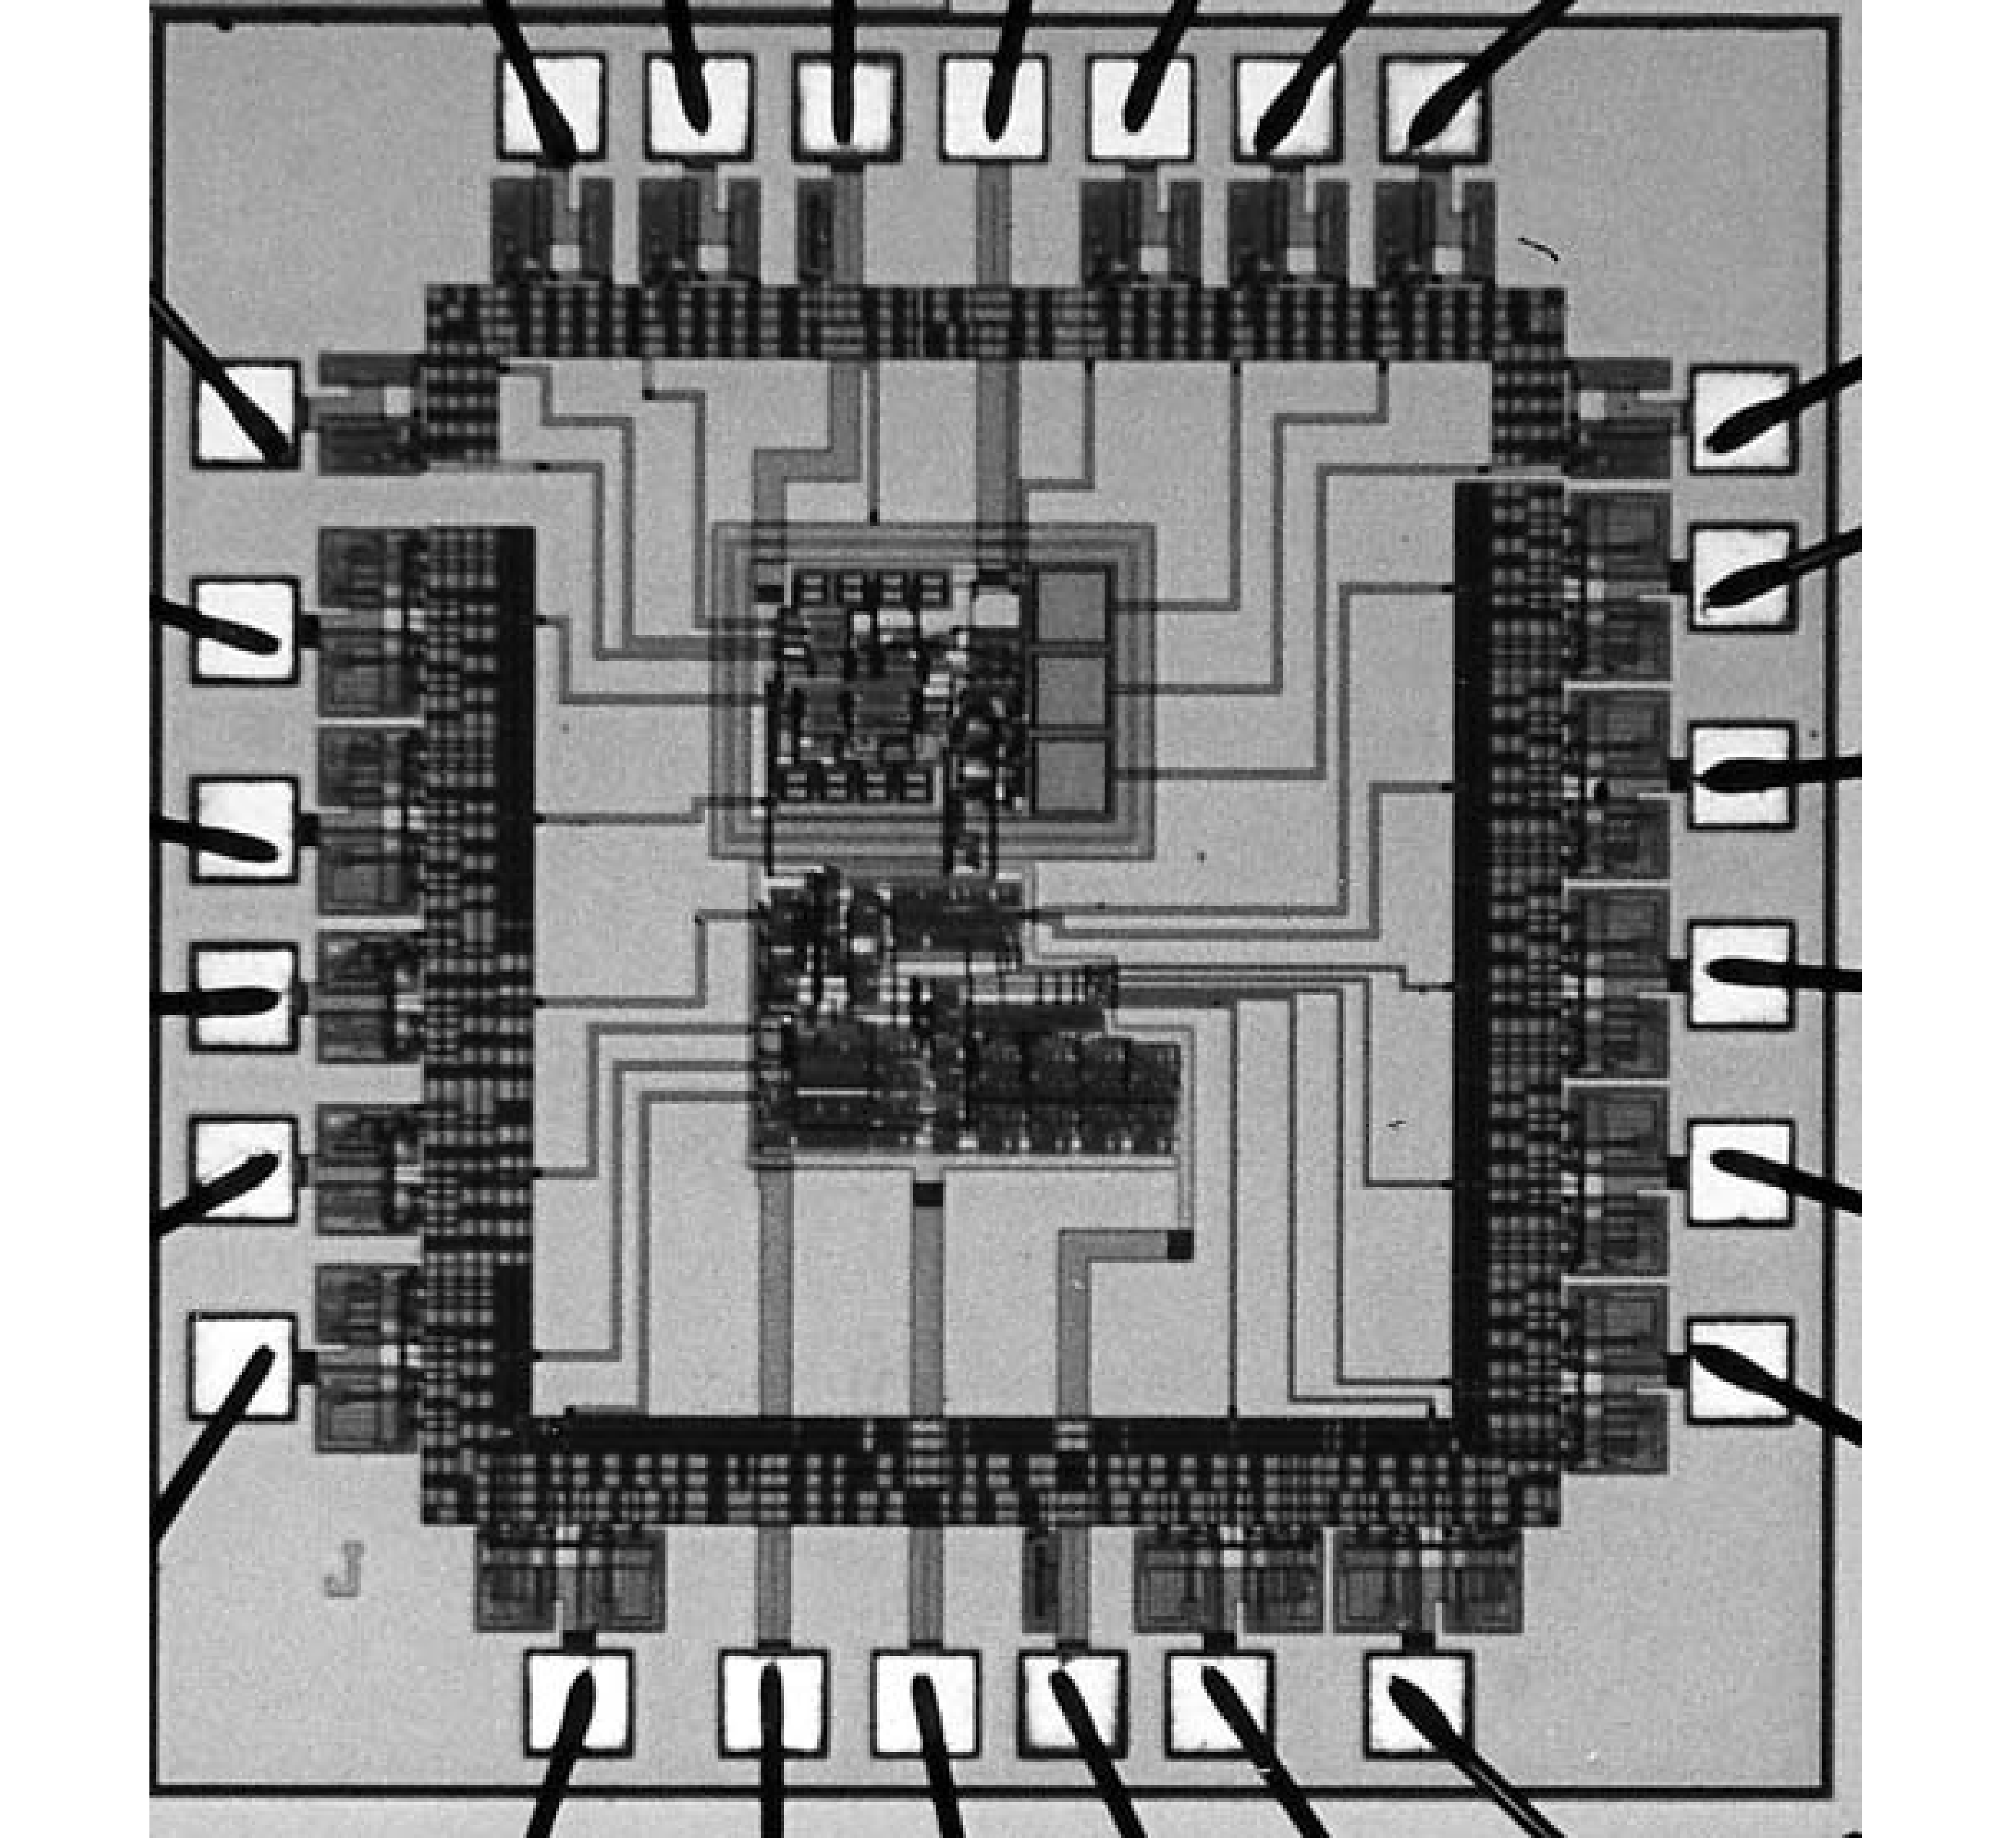 integrated circuits research paper An integrated circuit is an assembly of interconnected components on a small semiconductor chip, usually made of silicon as always the smithsonian chip collection is a must see (url: smithsonianchipssiedu.